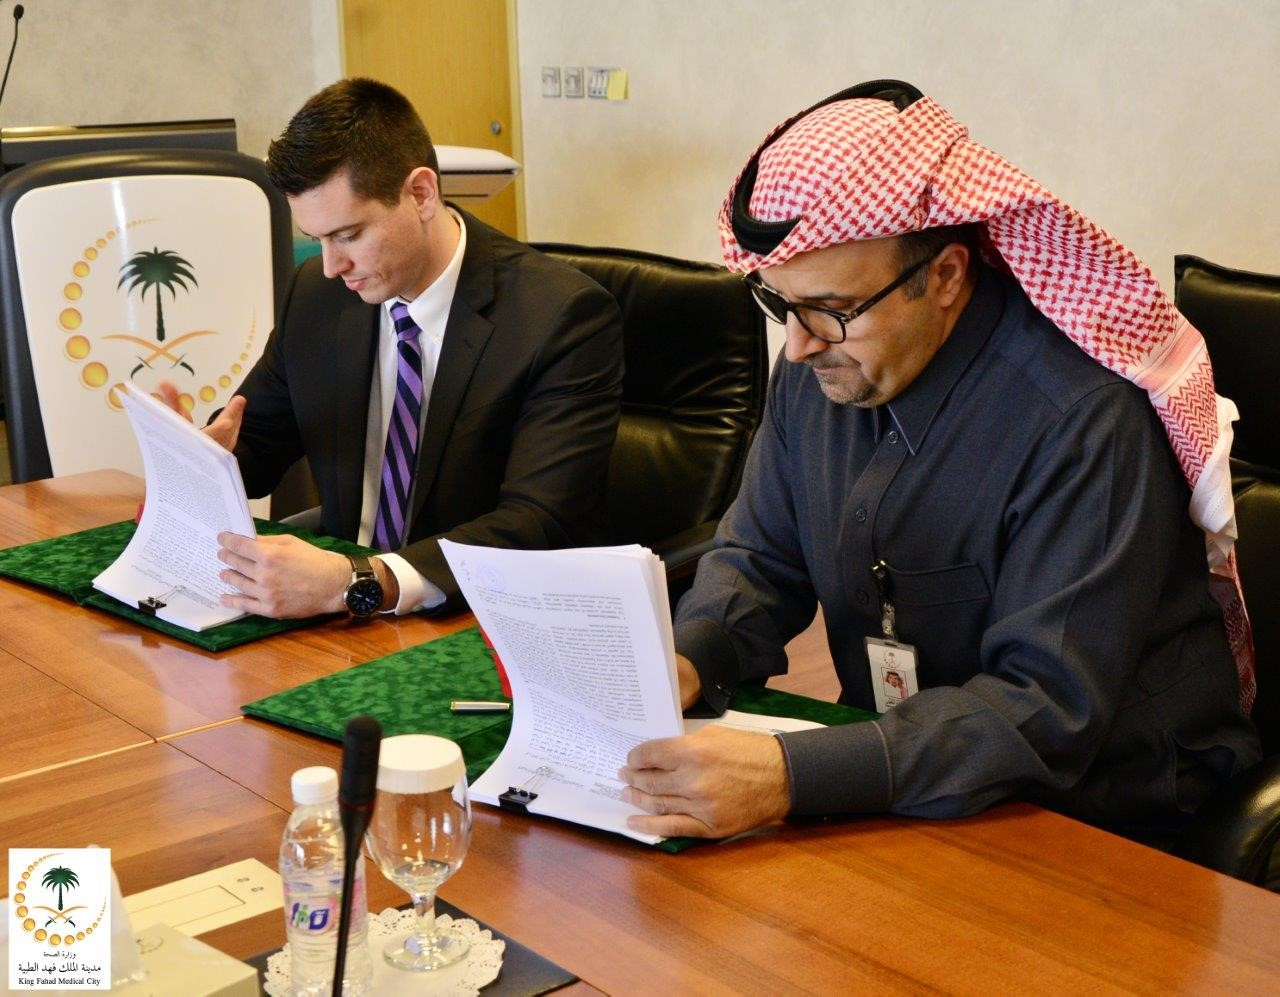 KFMC signs contract to apply (EPIC) new system for (EHR)